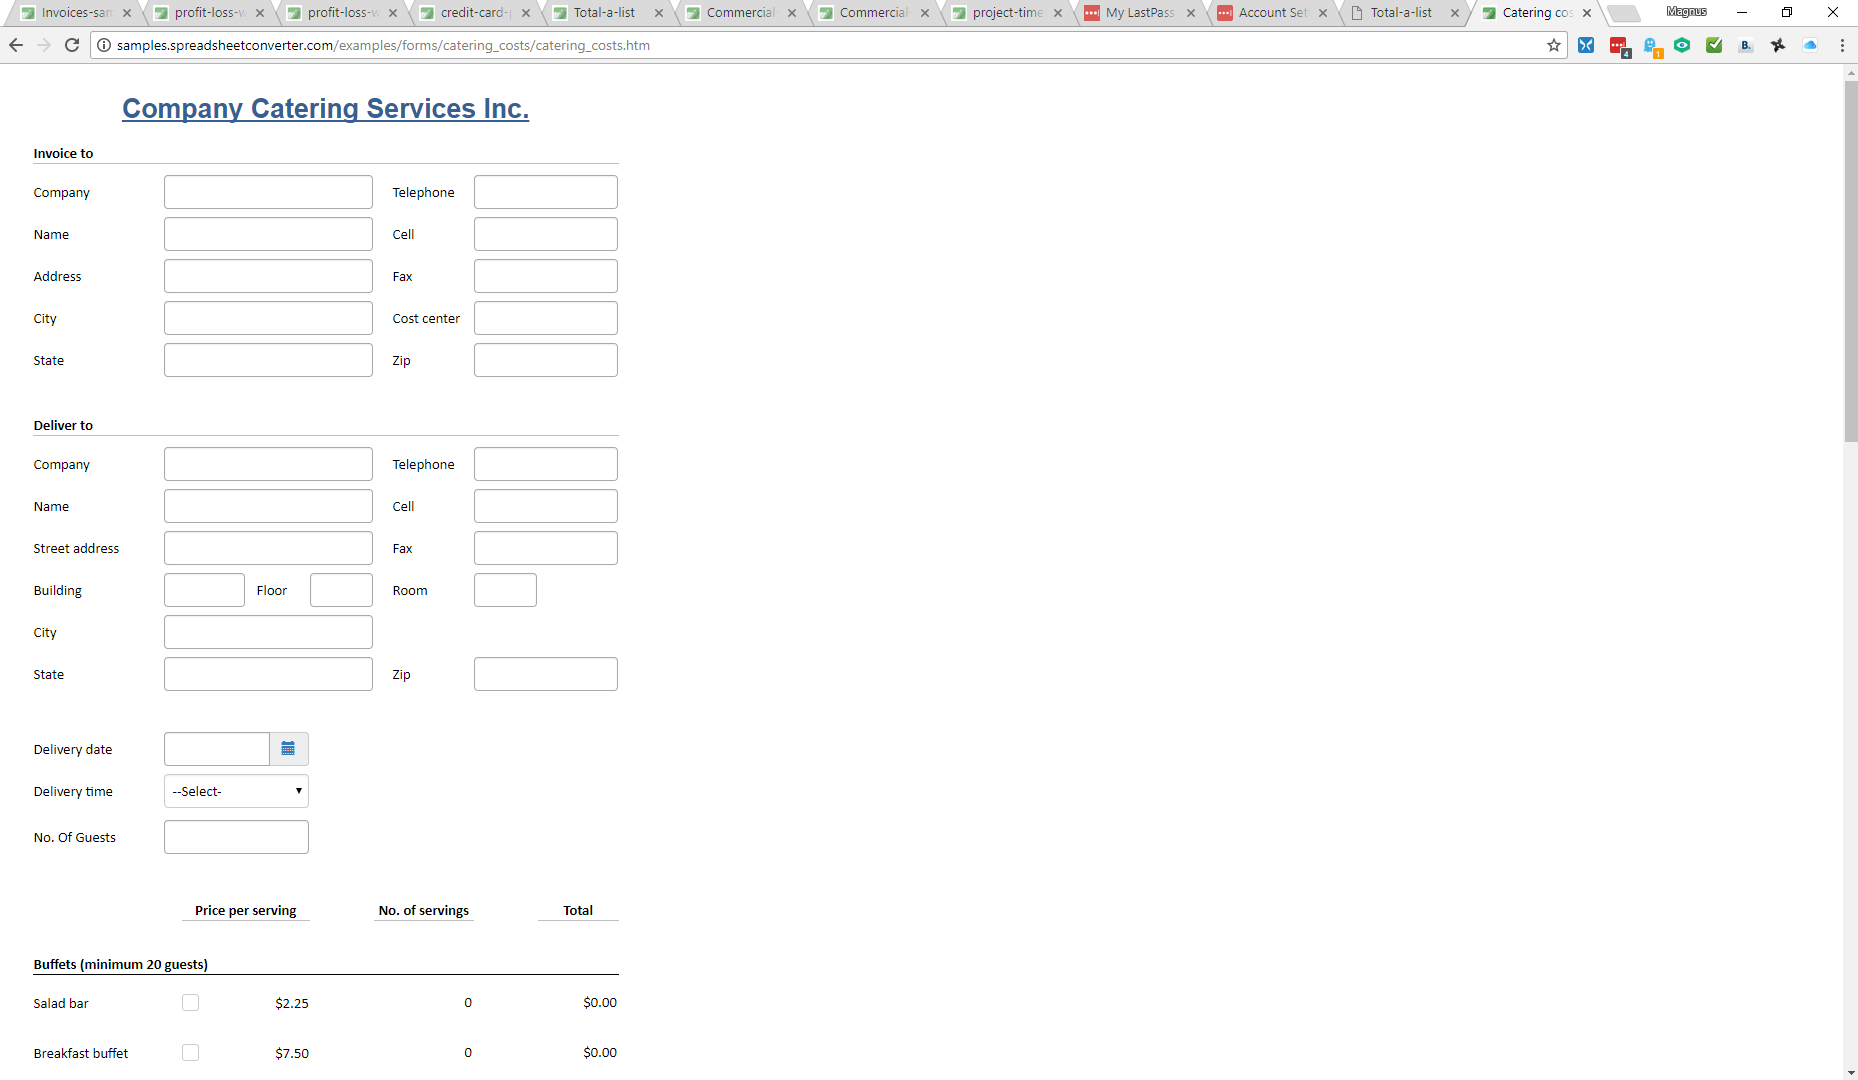 Screenshot of the catering form in Google Chrome